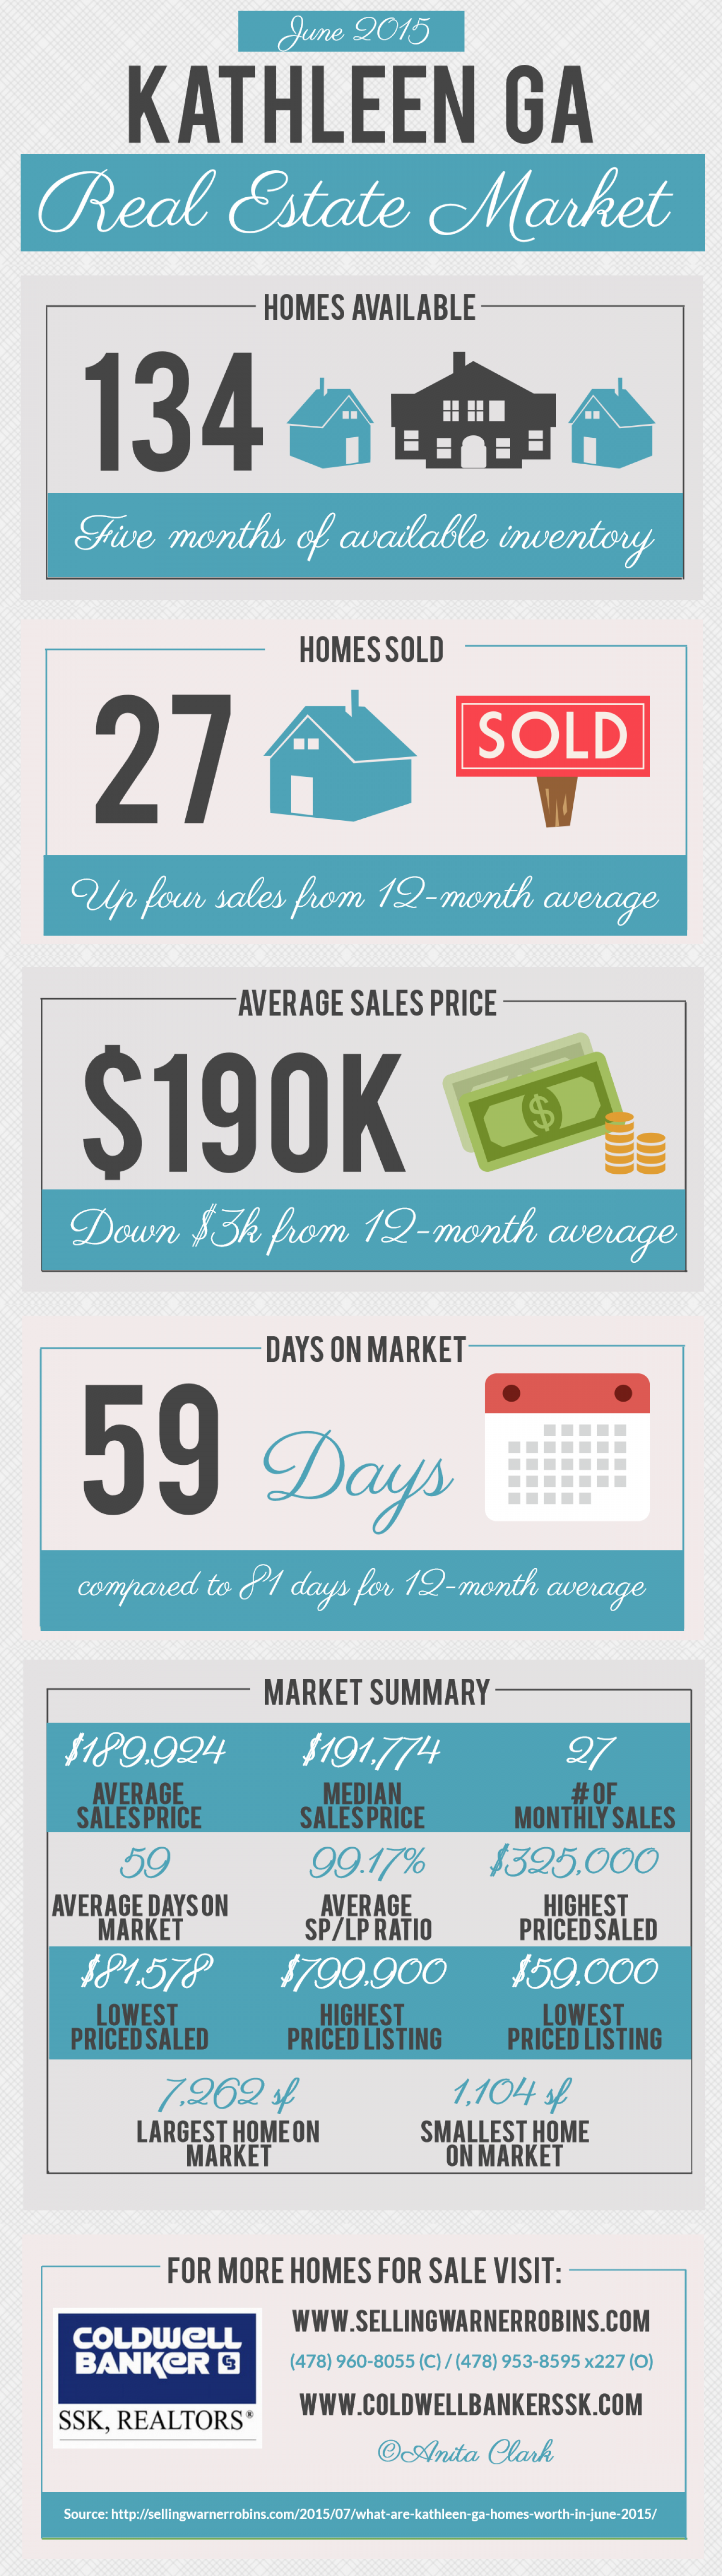 Kathleen GA Real Estate Market in June 2015 Infographic